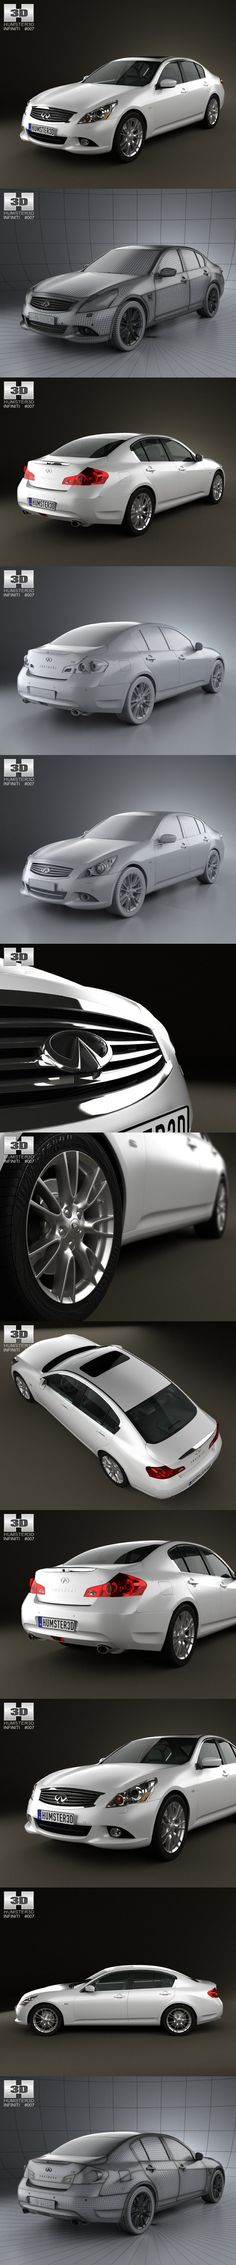 Infiniti G37 Sedan 2011. 3D Vehicles